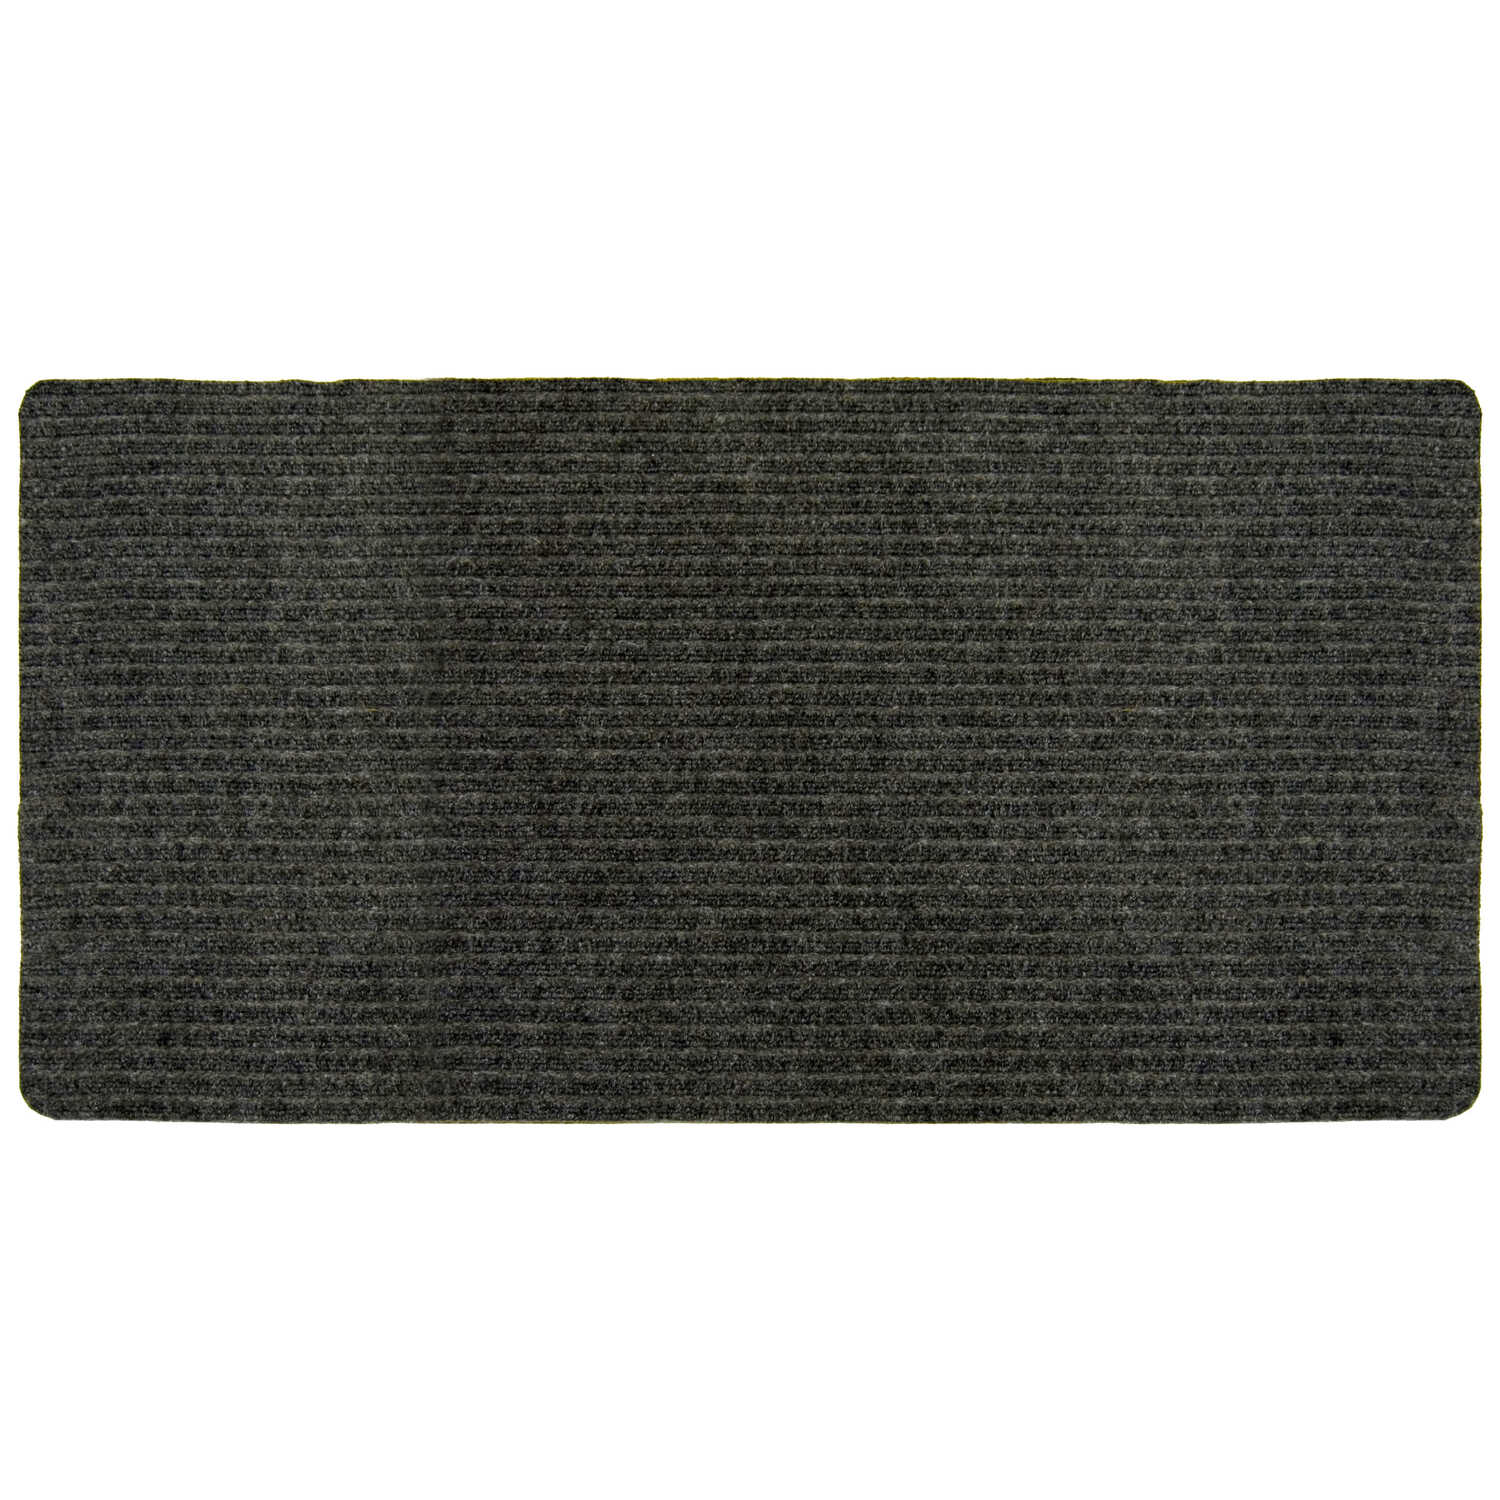 Multy Home  Concord  Nonslip 36 in. W x 50 ft. L Charcoal  Carpet Runner